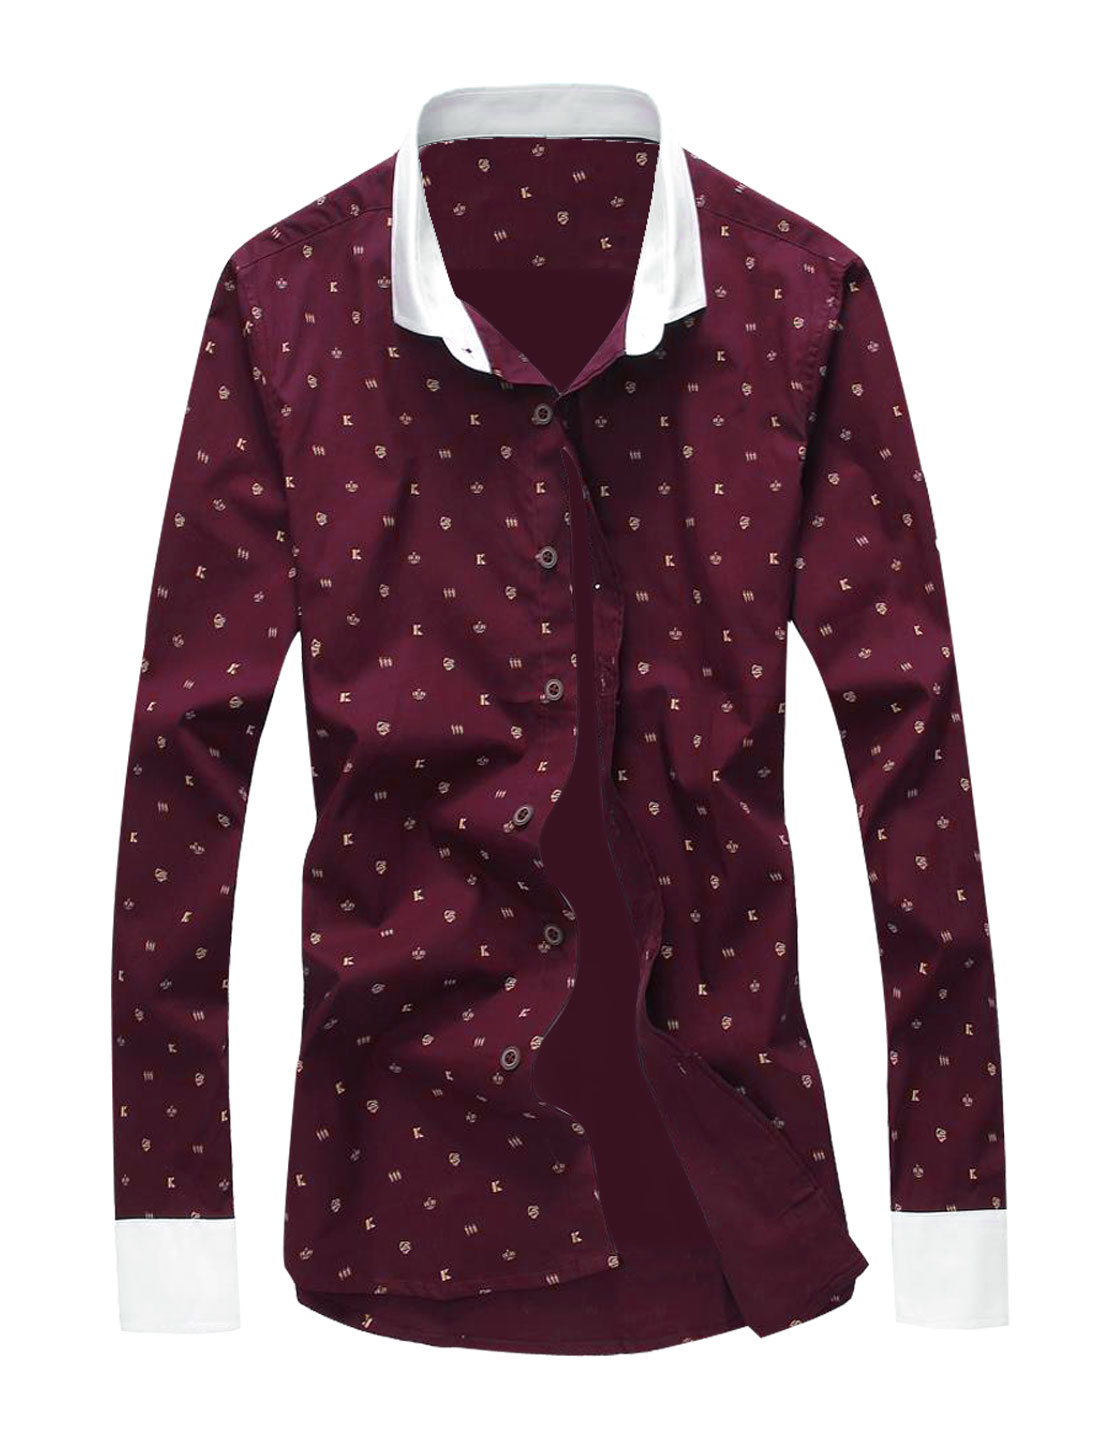 Men Long Sleeve Button Down Crown Pattern Slim Fit Shirt Burgundy M